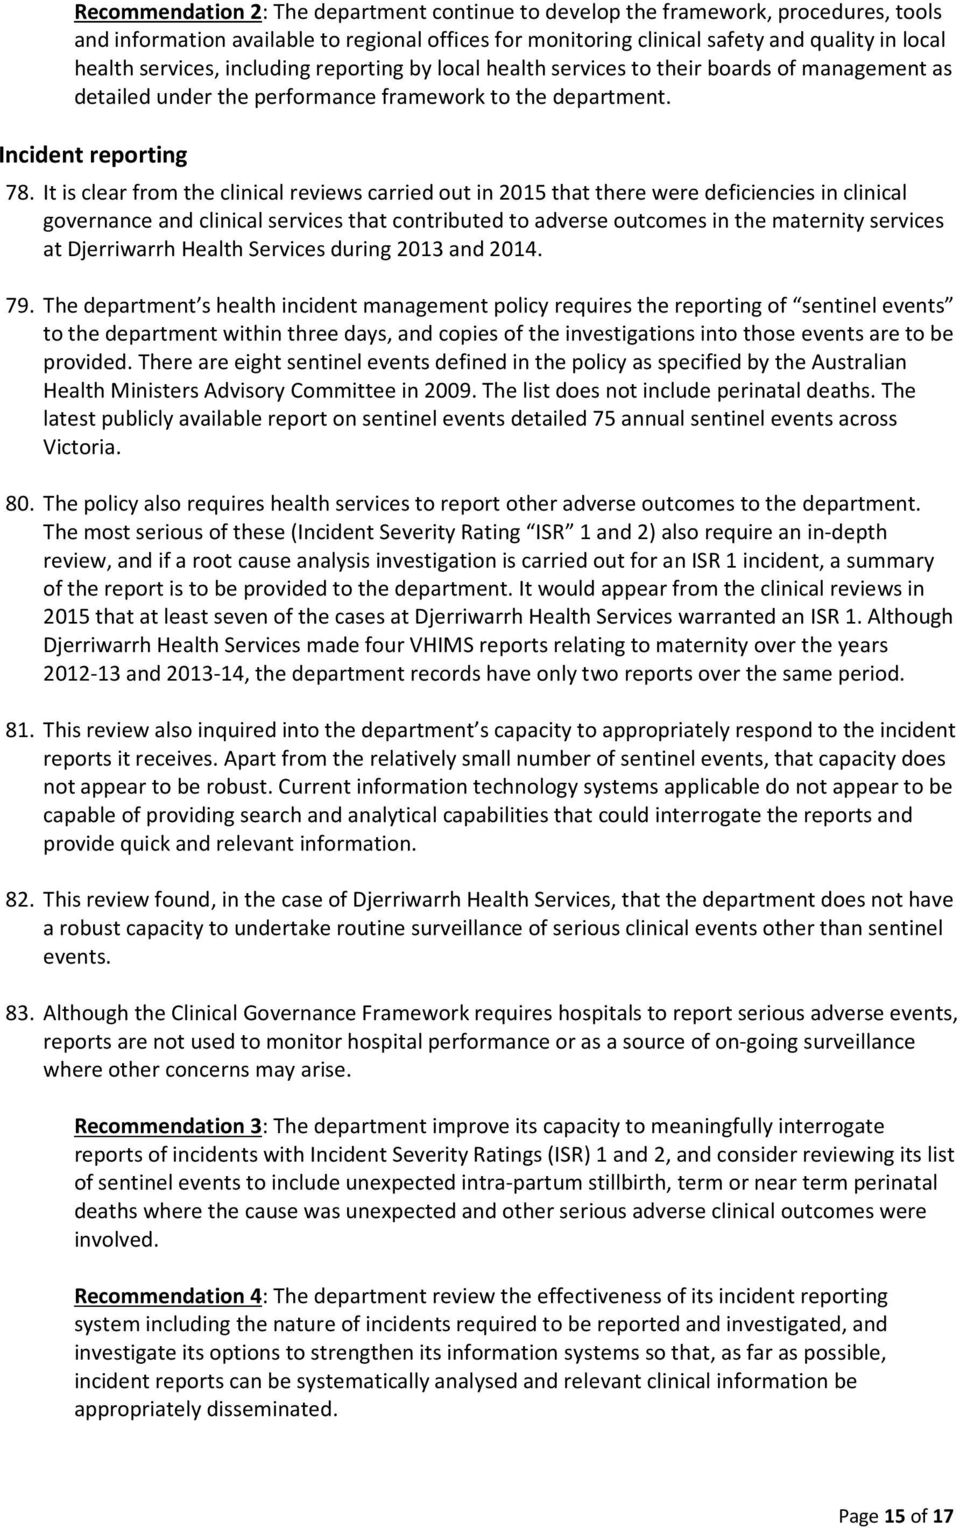 It is clear from the clinical reviews carried out in 2015 that there were deficiencies in clinical governance and clinical services that contributed to adverse outcomes in the maternity services at